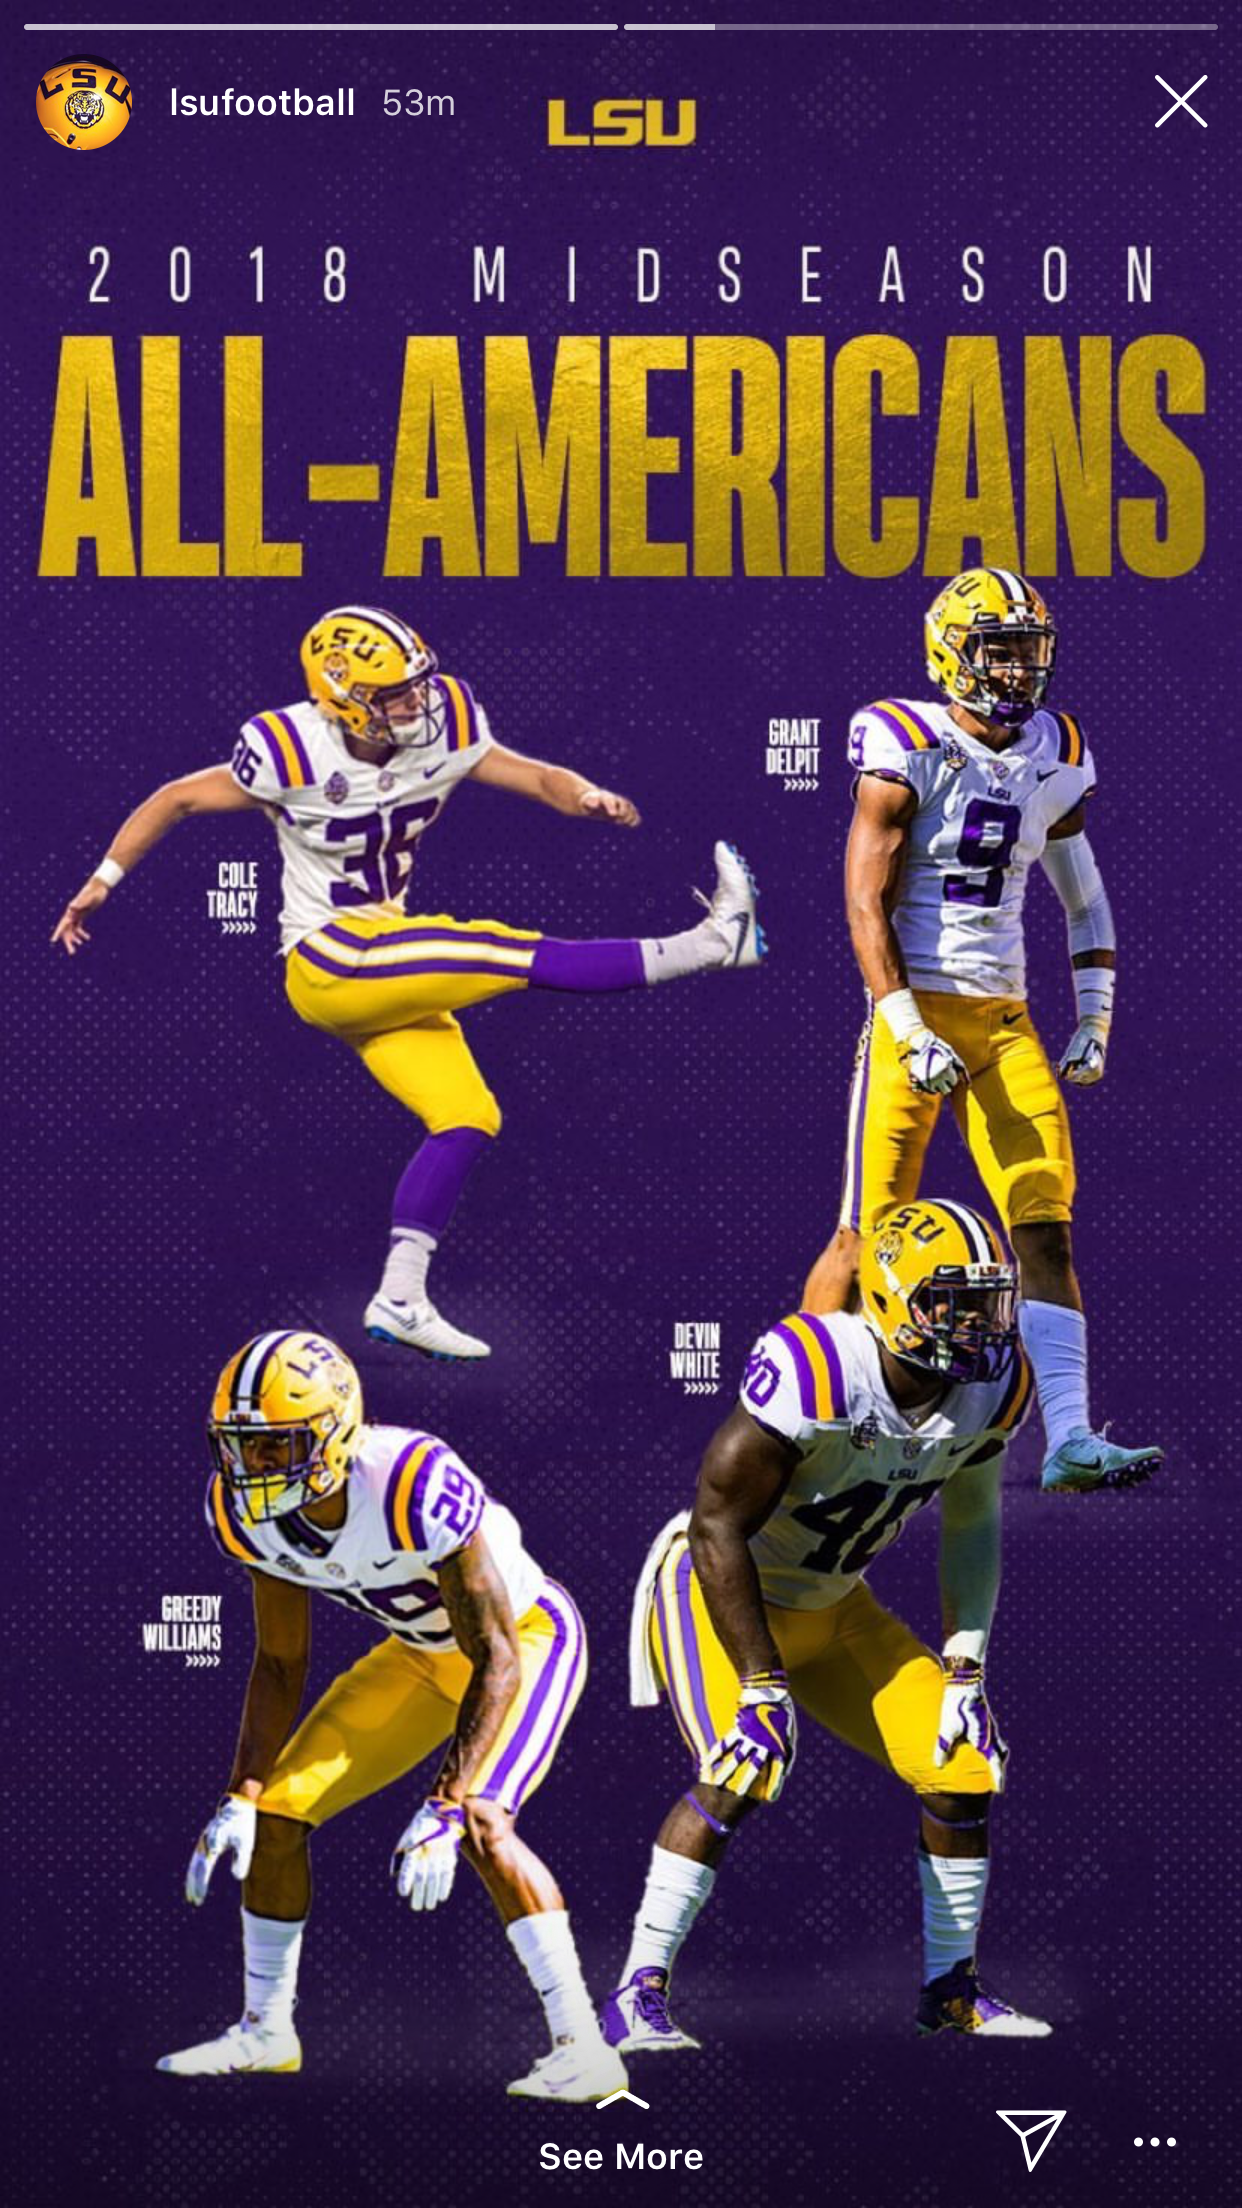 Mid Season All American Lsu Tigers Football Lsu Football Lsu Tigers